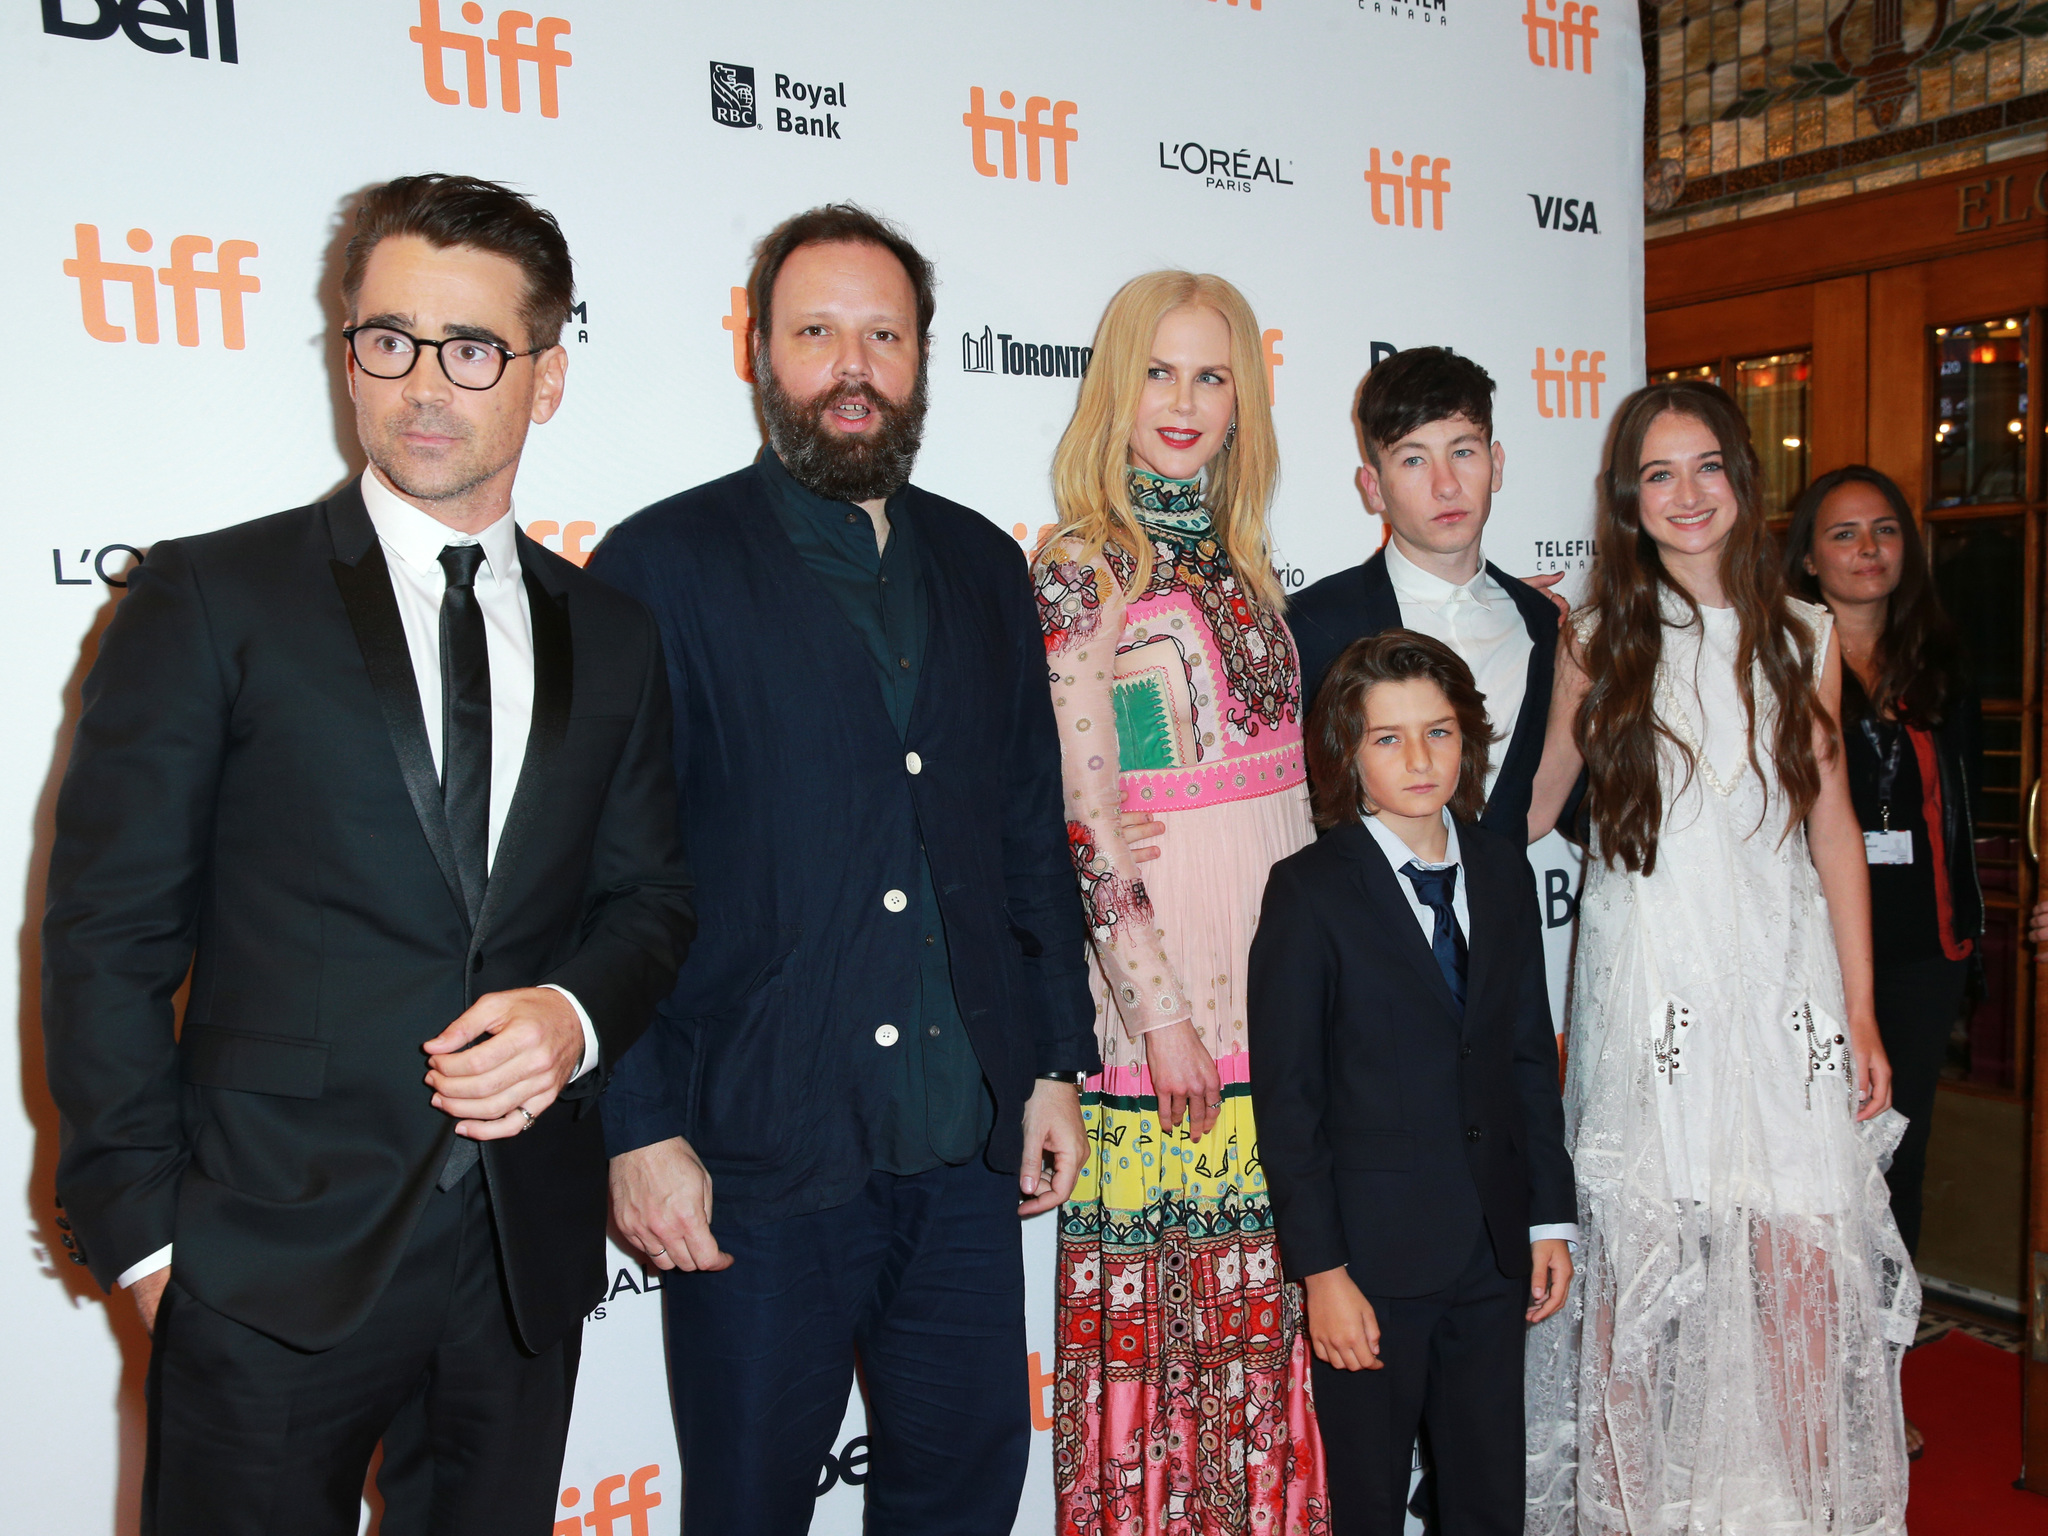 Nicole Kidman, Colin Farrell, Yorgos Lanthimos, Raffey Cassidy, Barry Keoghan, and Sunny Suljic at an event for The Killing of a Sacred Deer (2017)